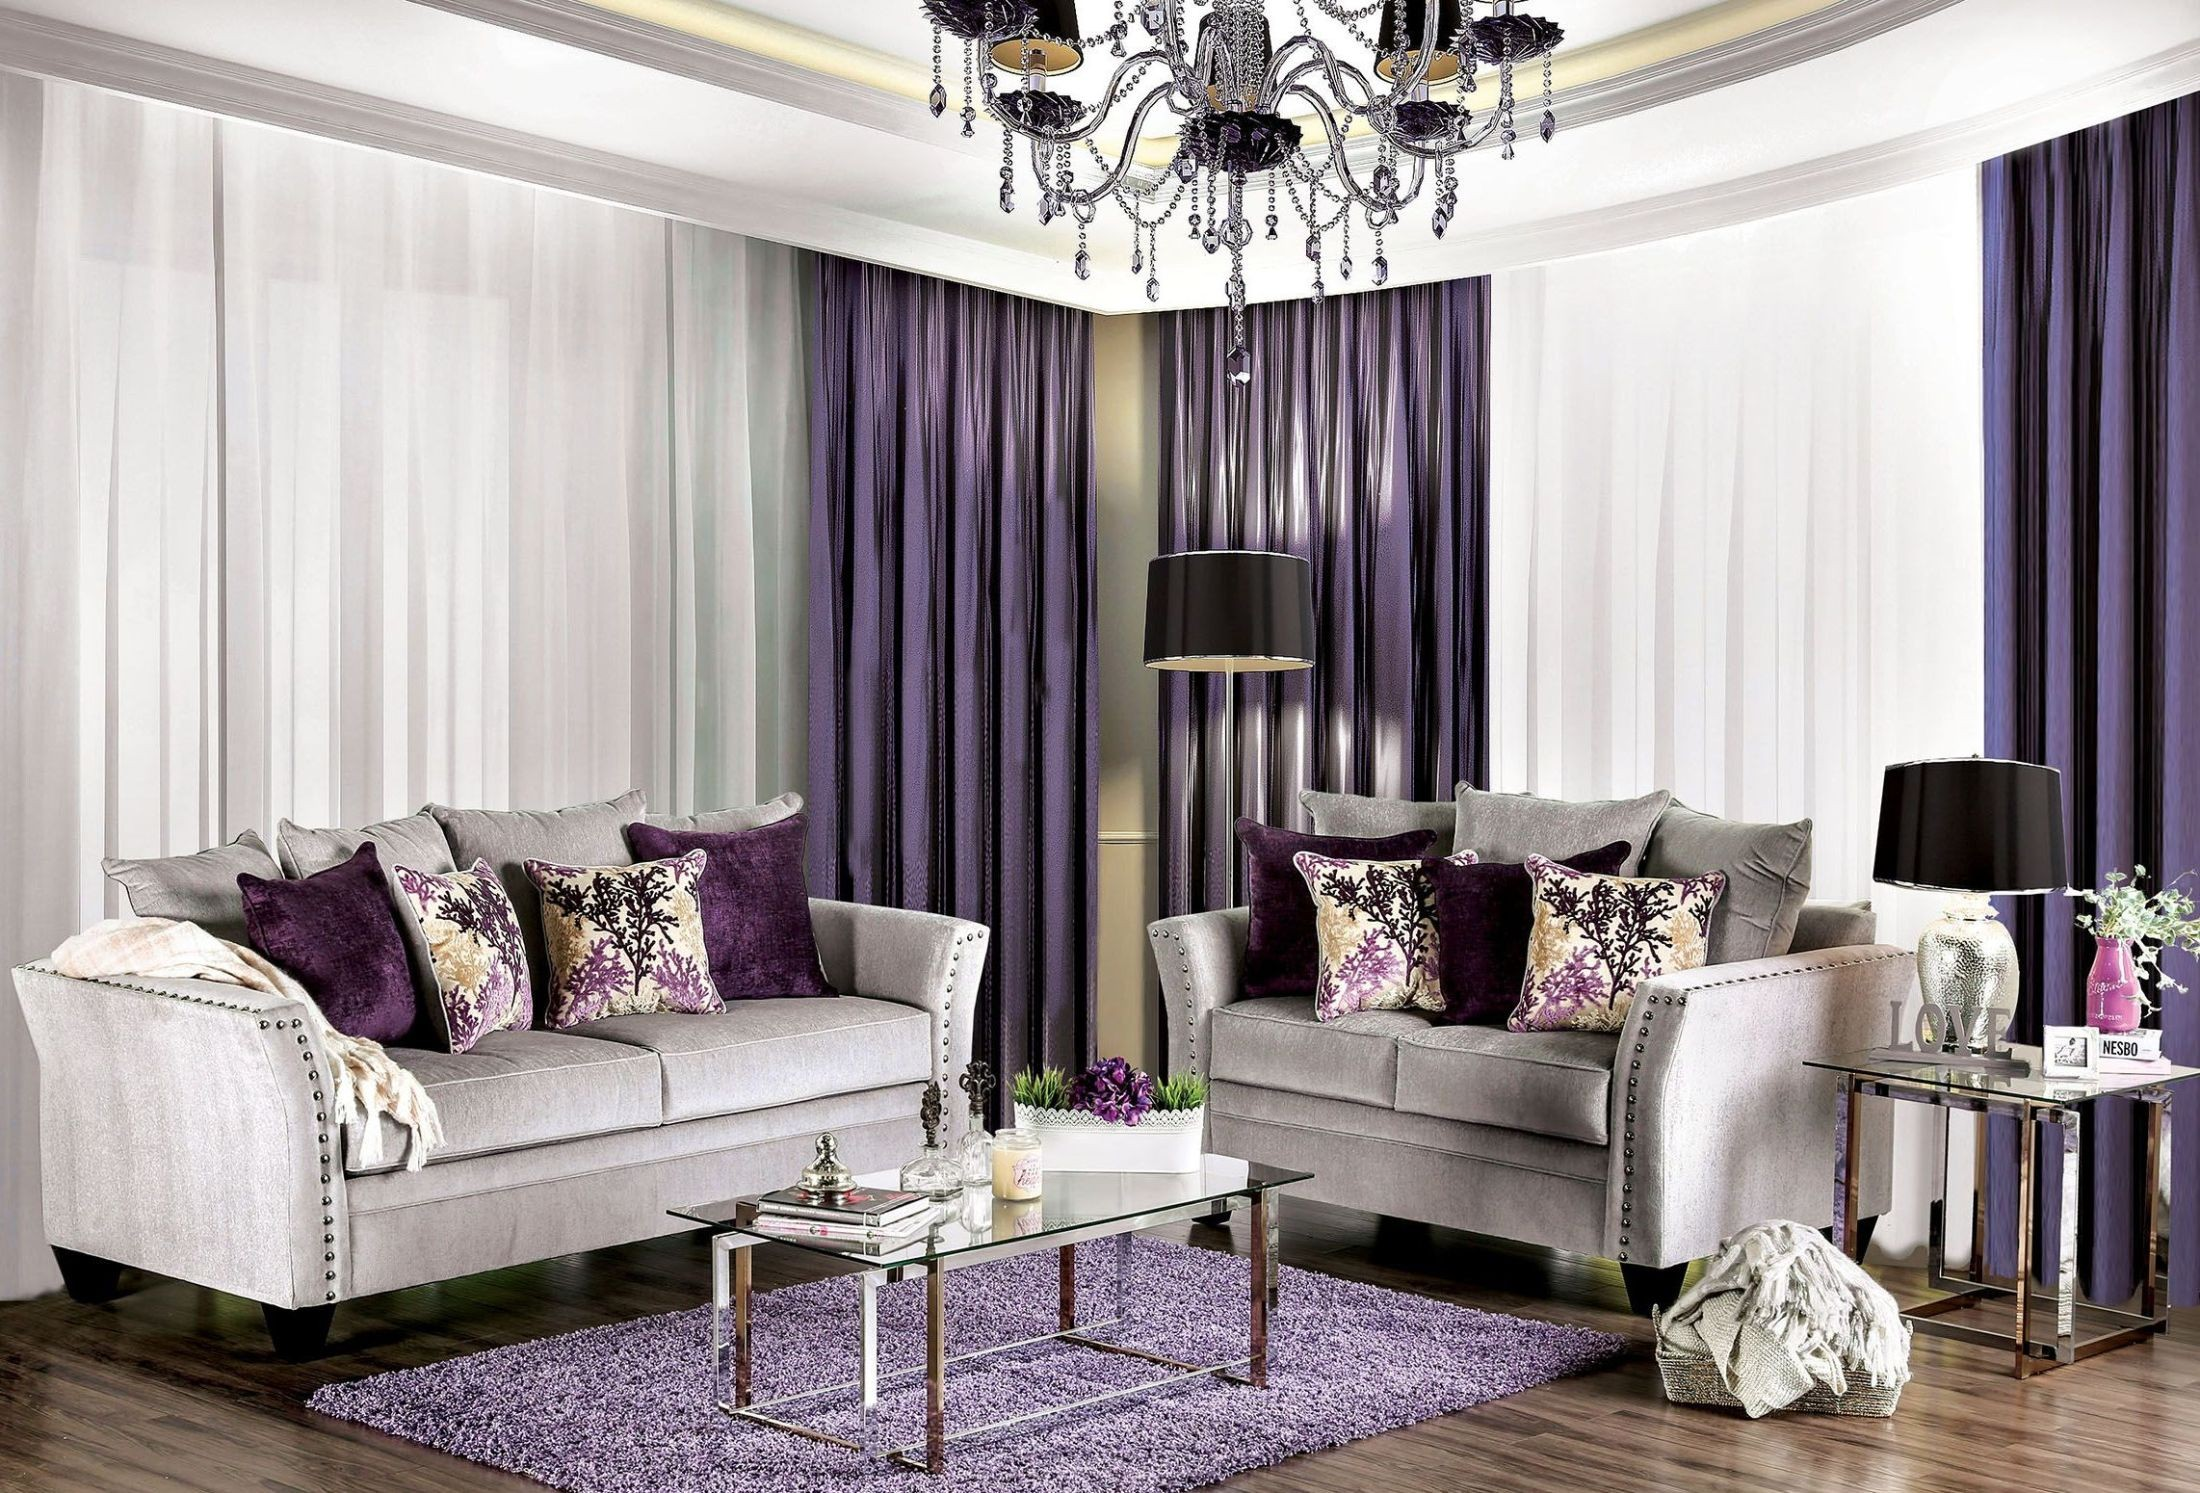 Oliviera silver living room set from furniture of america coleman furniture - Silver living room furniture ...